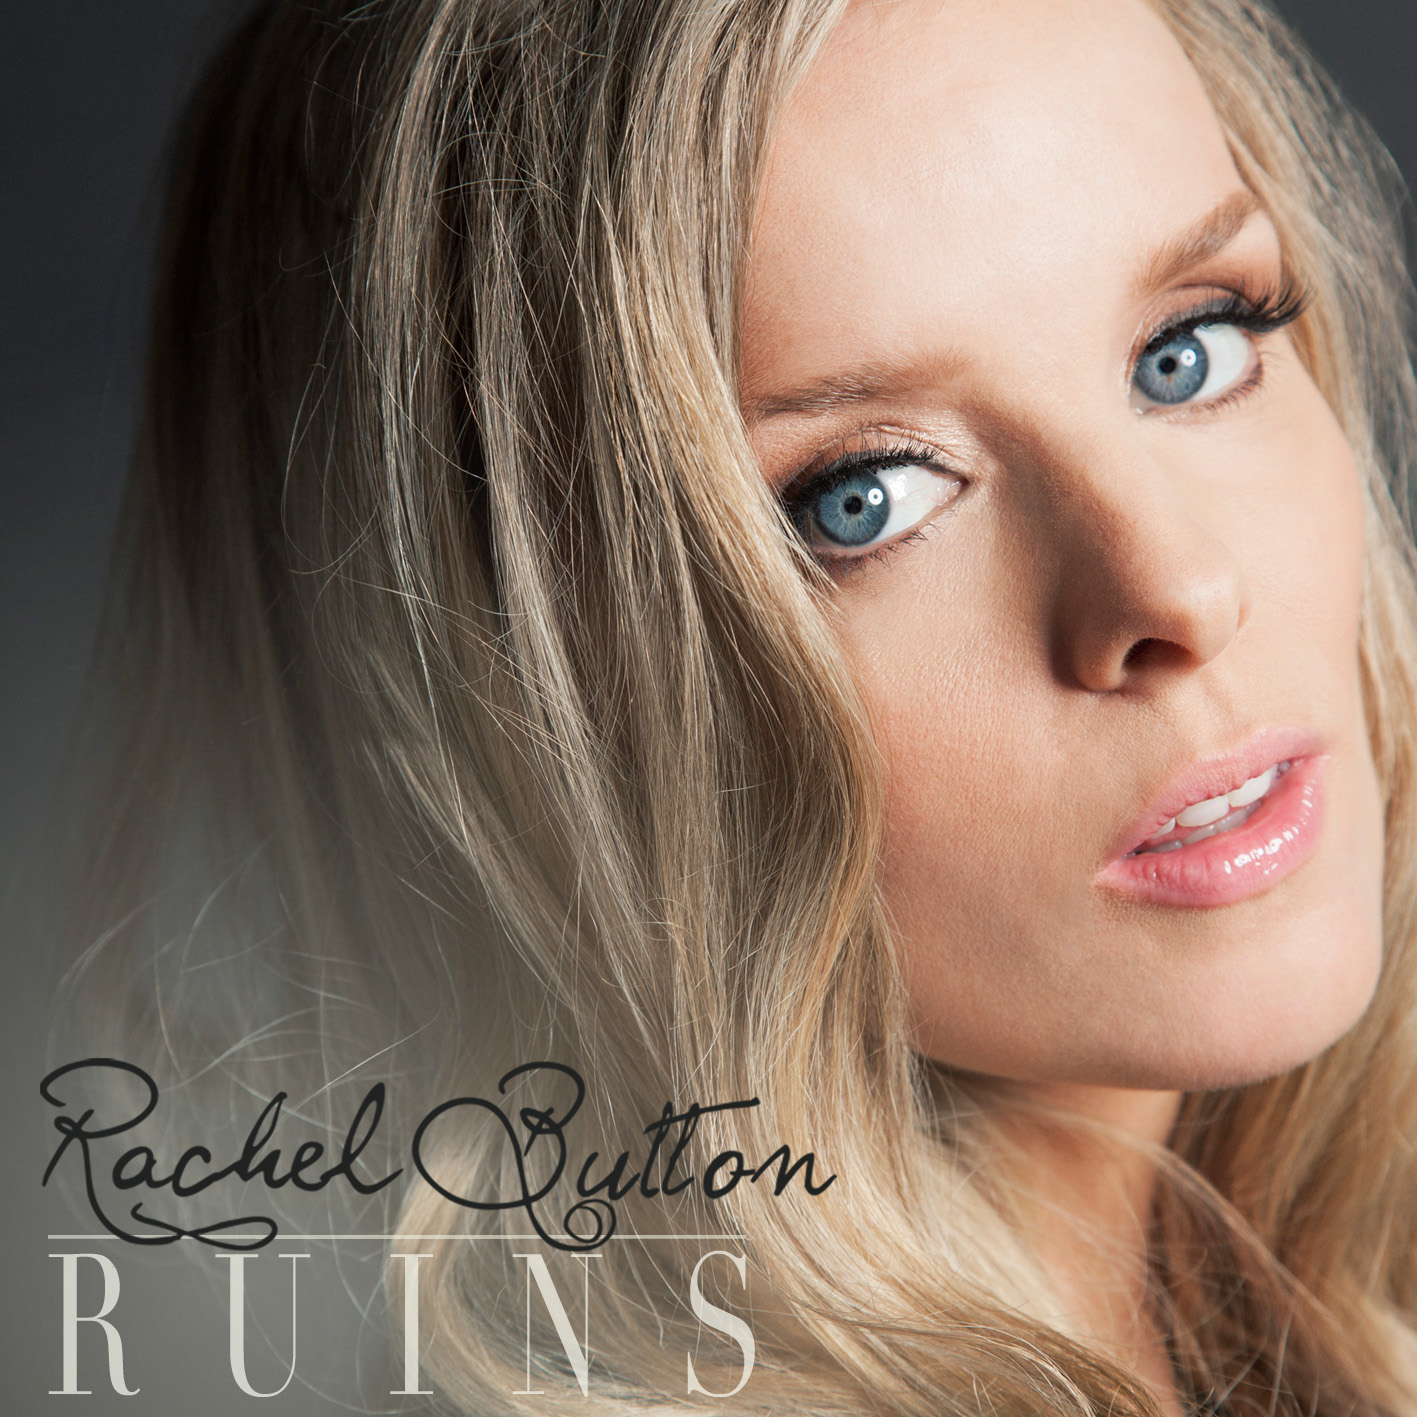 Ruins Rachel Button Official cover